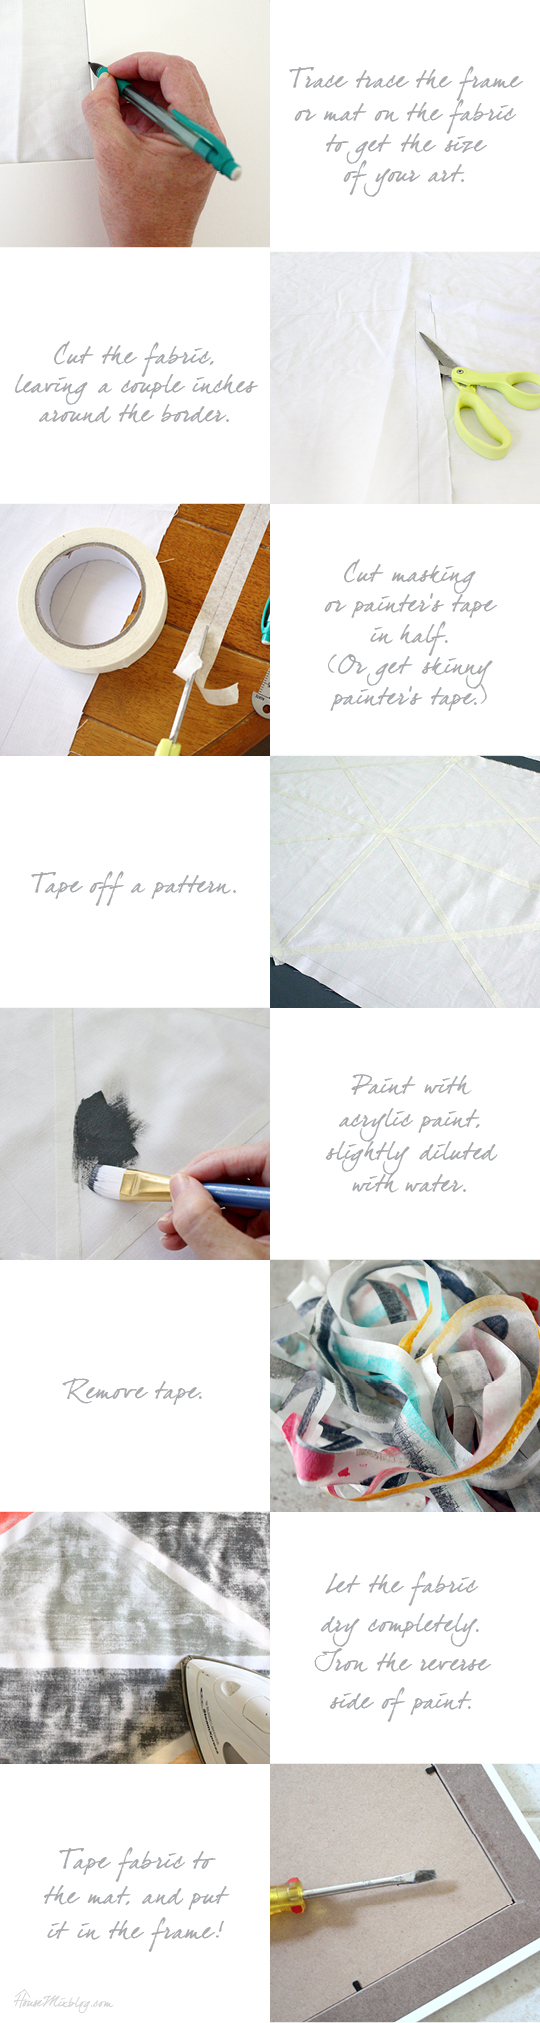 Step by step instructions for DIY art with tape